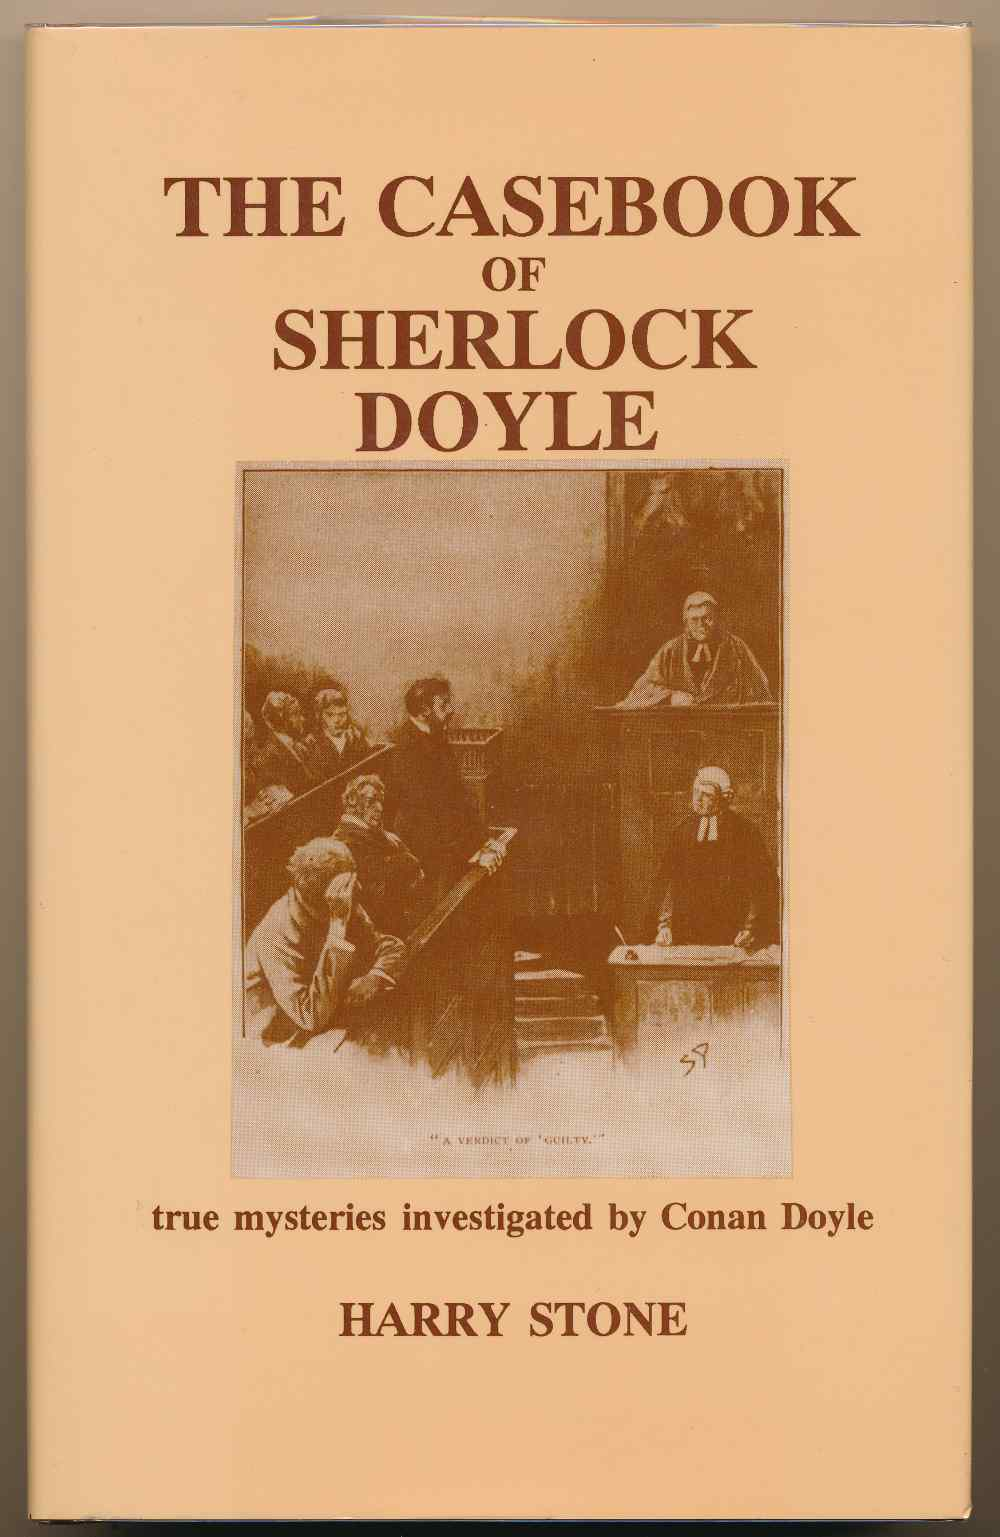 The casebook of Sherlock Doyle : true mysteries investigated by Conan Doyle